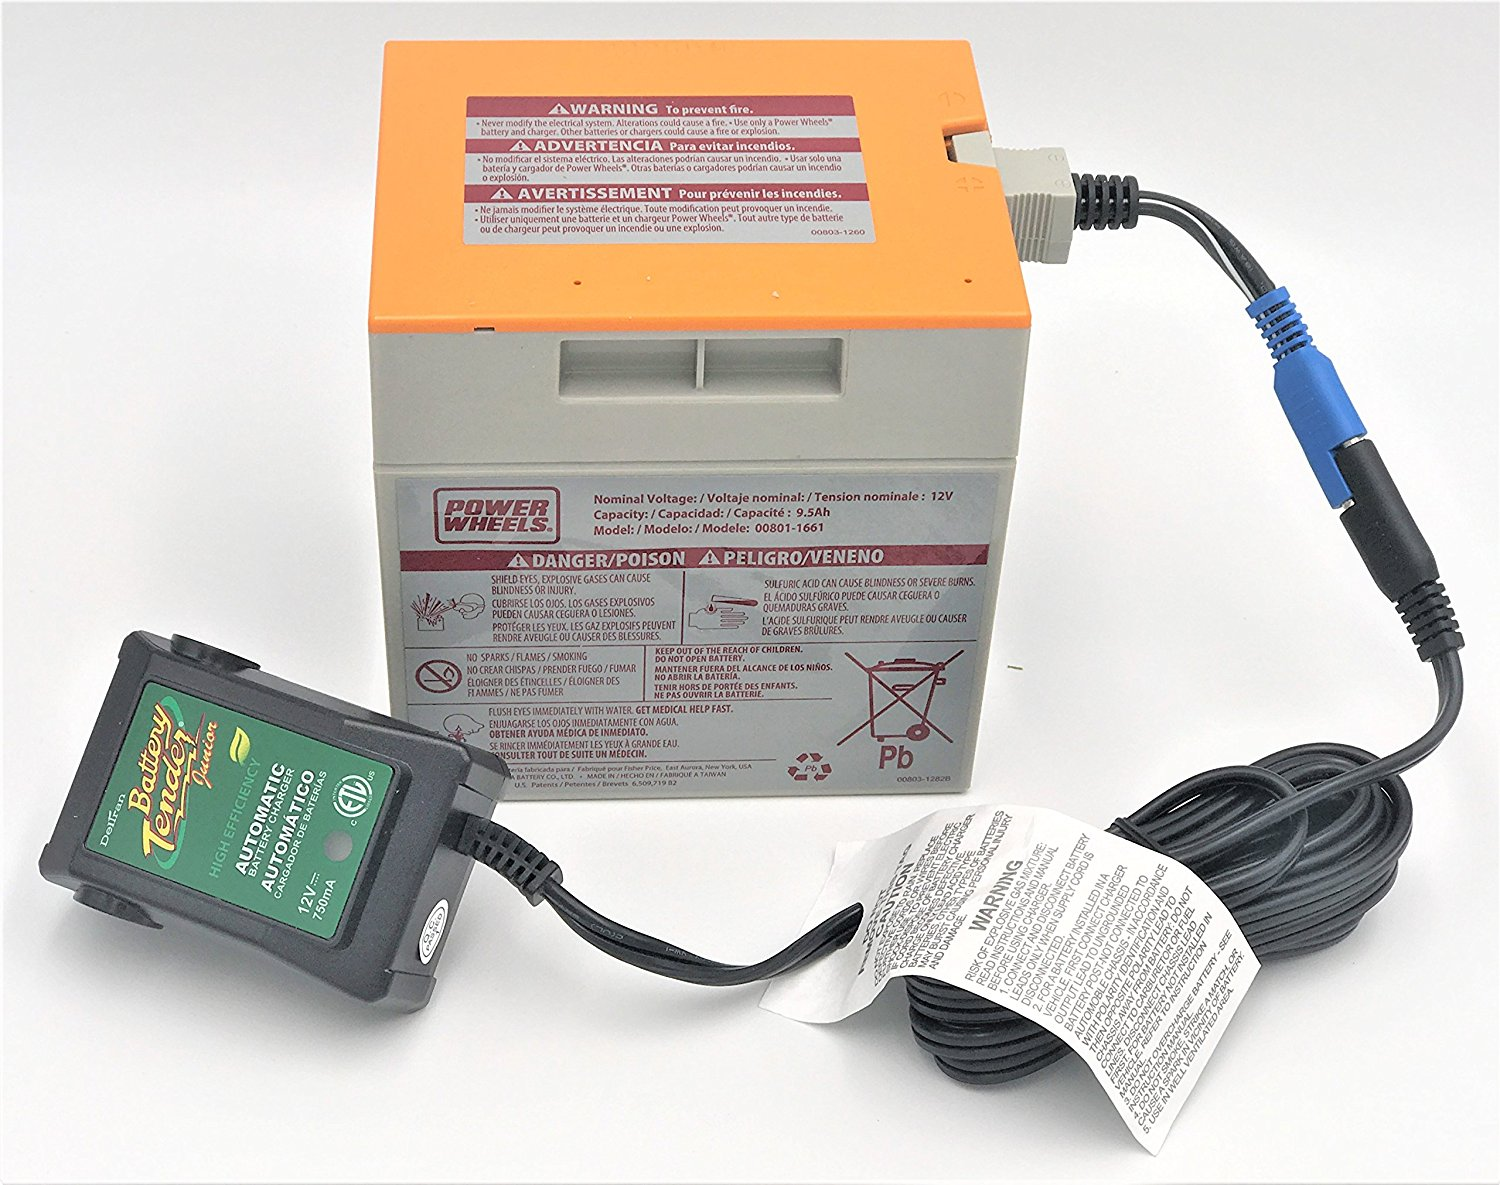 power wheels orange 12 volt battery 00801 1661 and automatic rh walmart com Power Wheels Battery Charger power wheels 12v battery harness